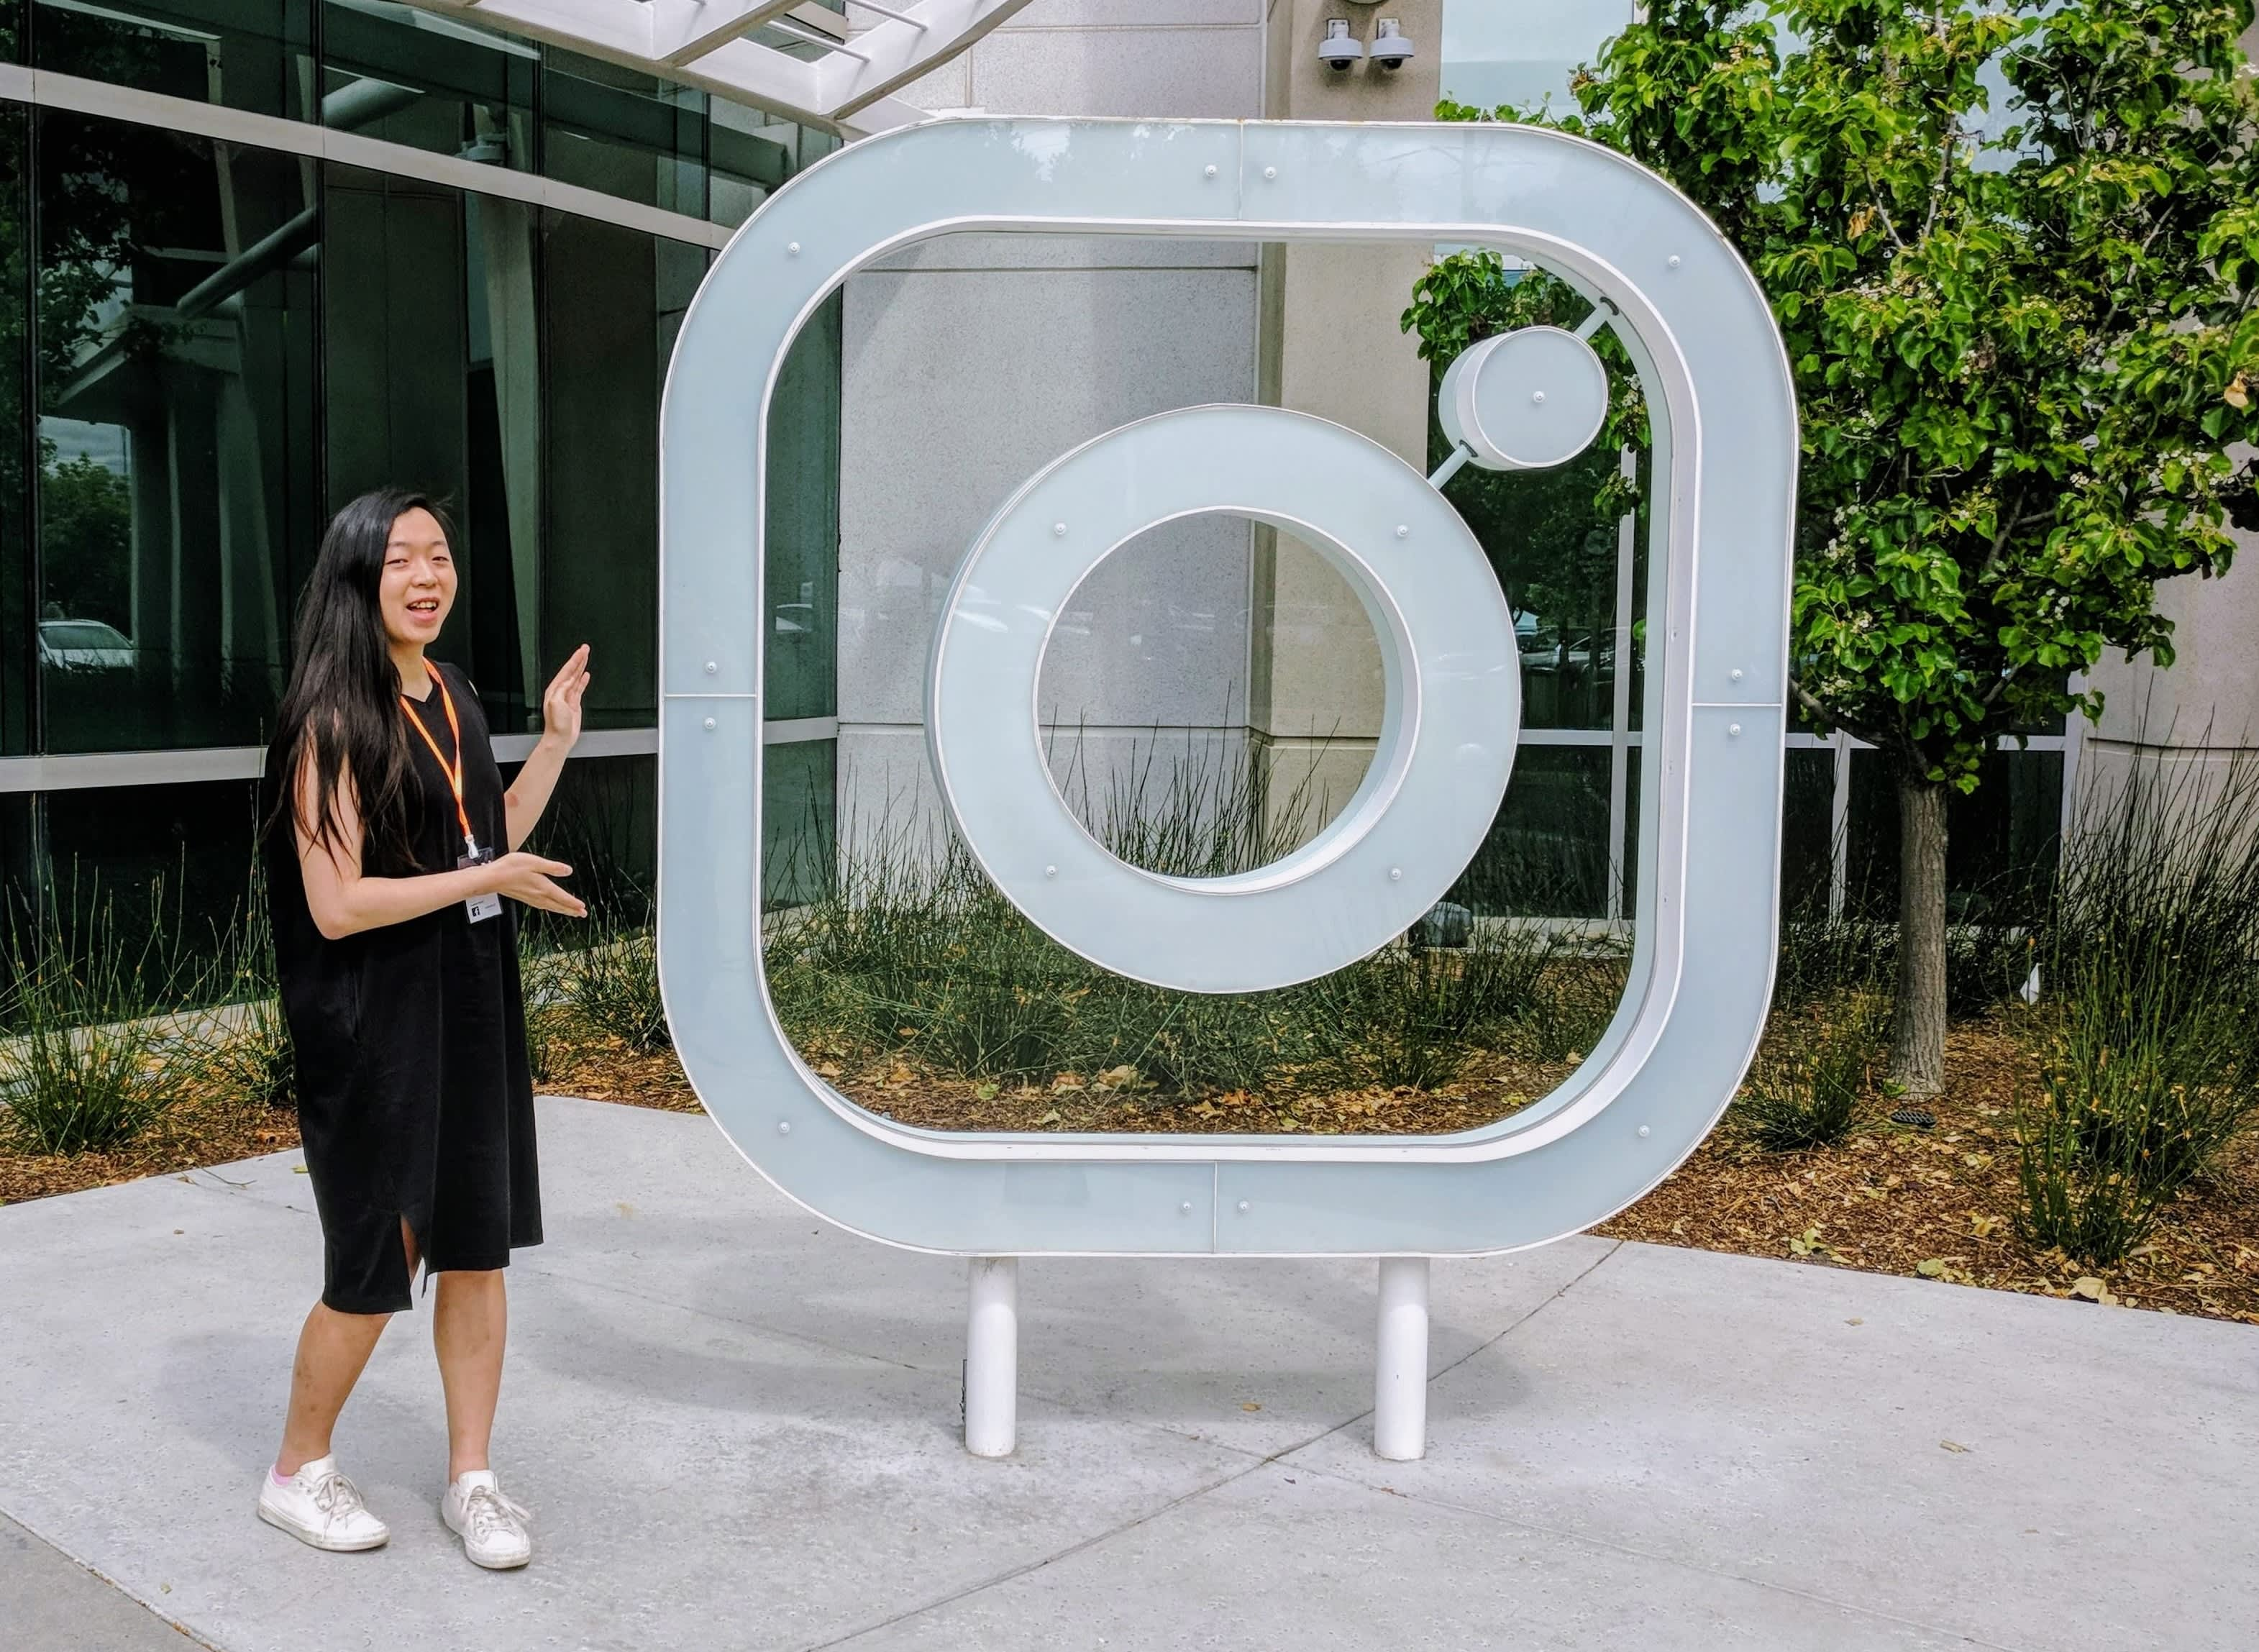 Facebook employees turn to rogue hacker from Hong Kong to learn what other teams are building